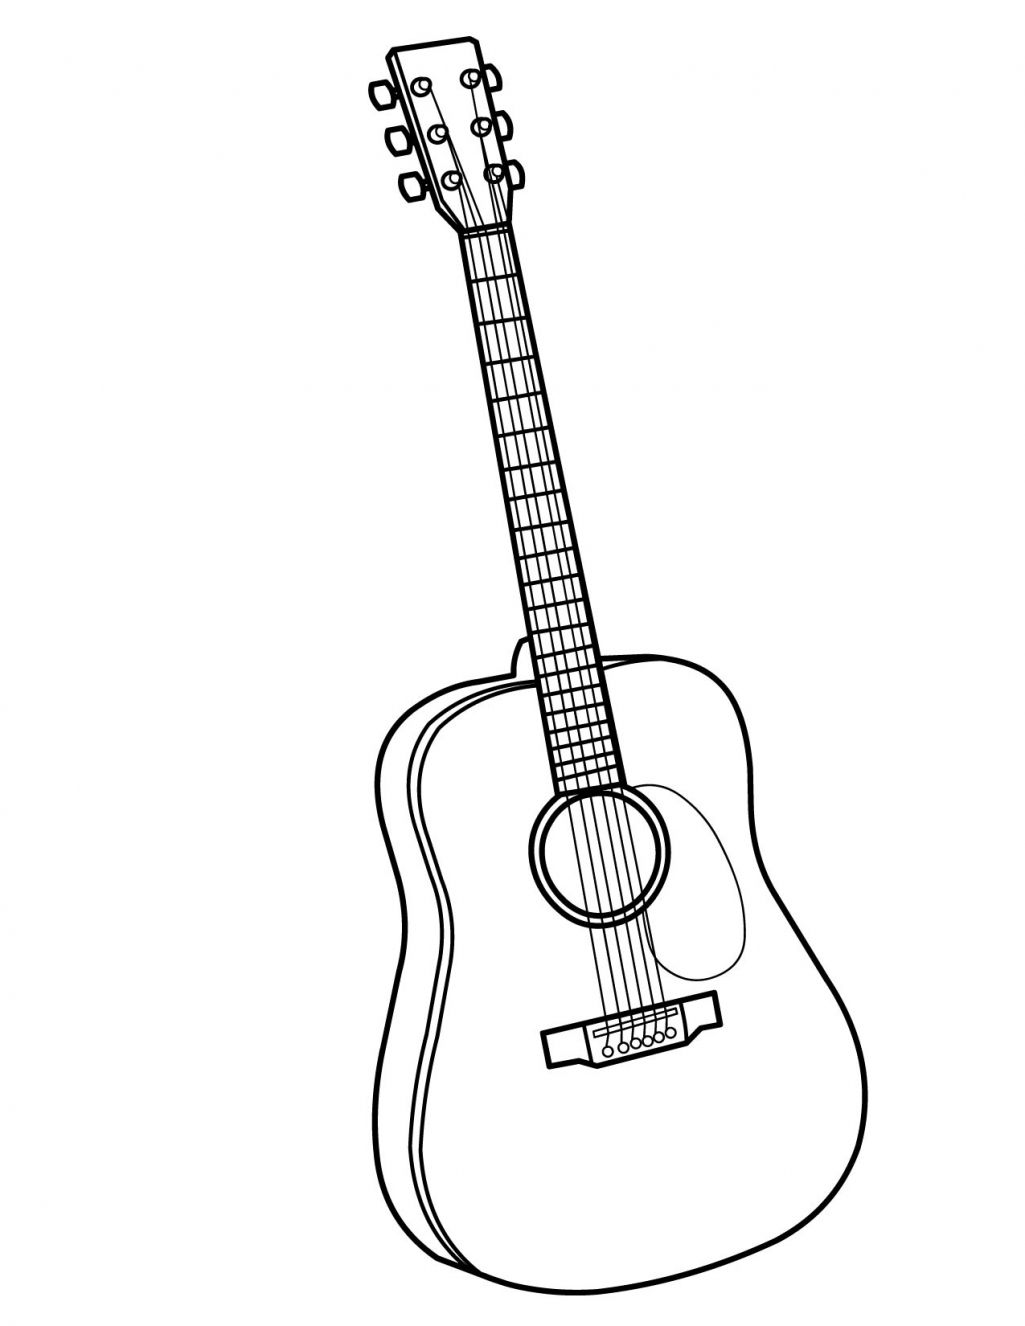 printable pictures of musical instruments pin di string instrument coloring pages musical printable of pictures instruments